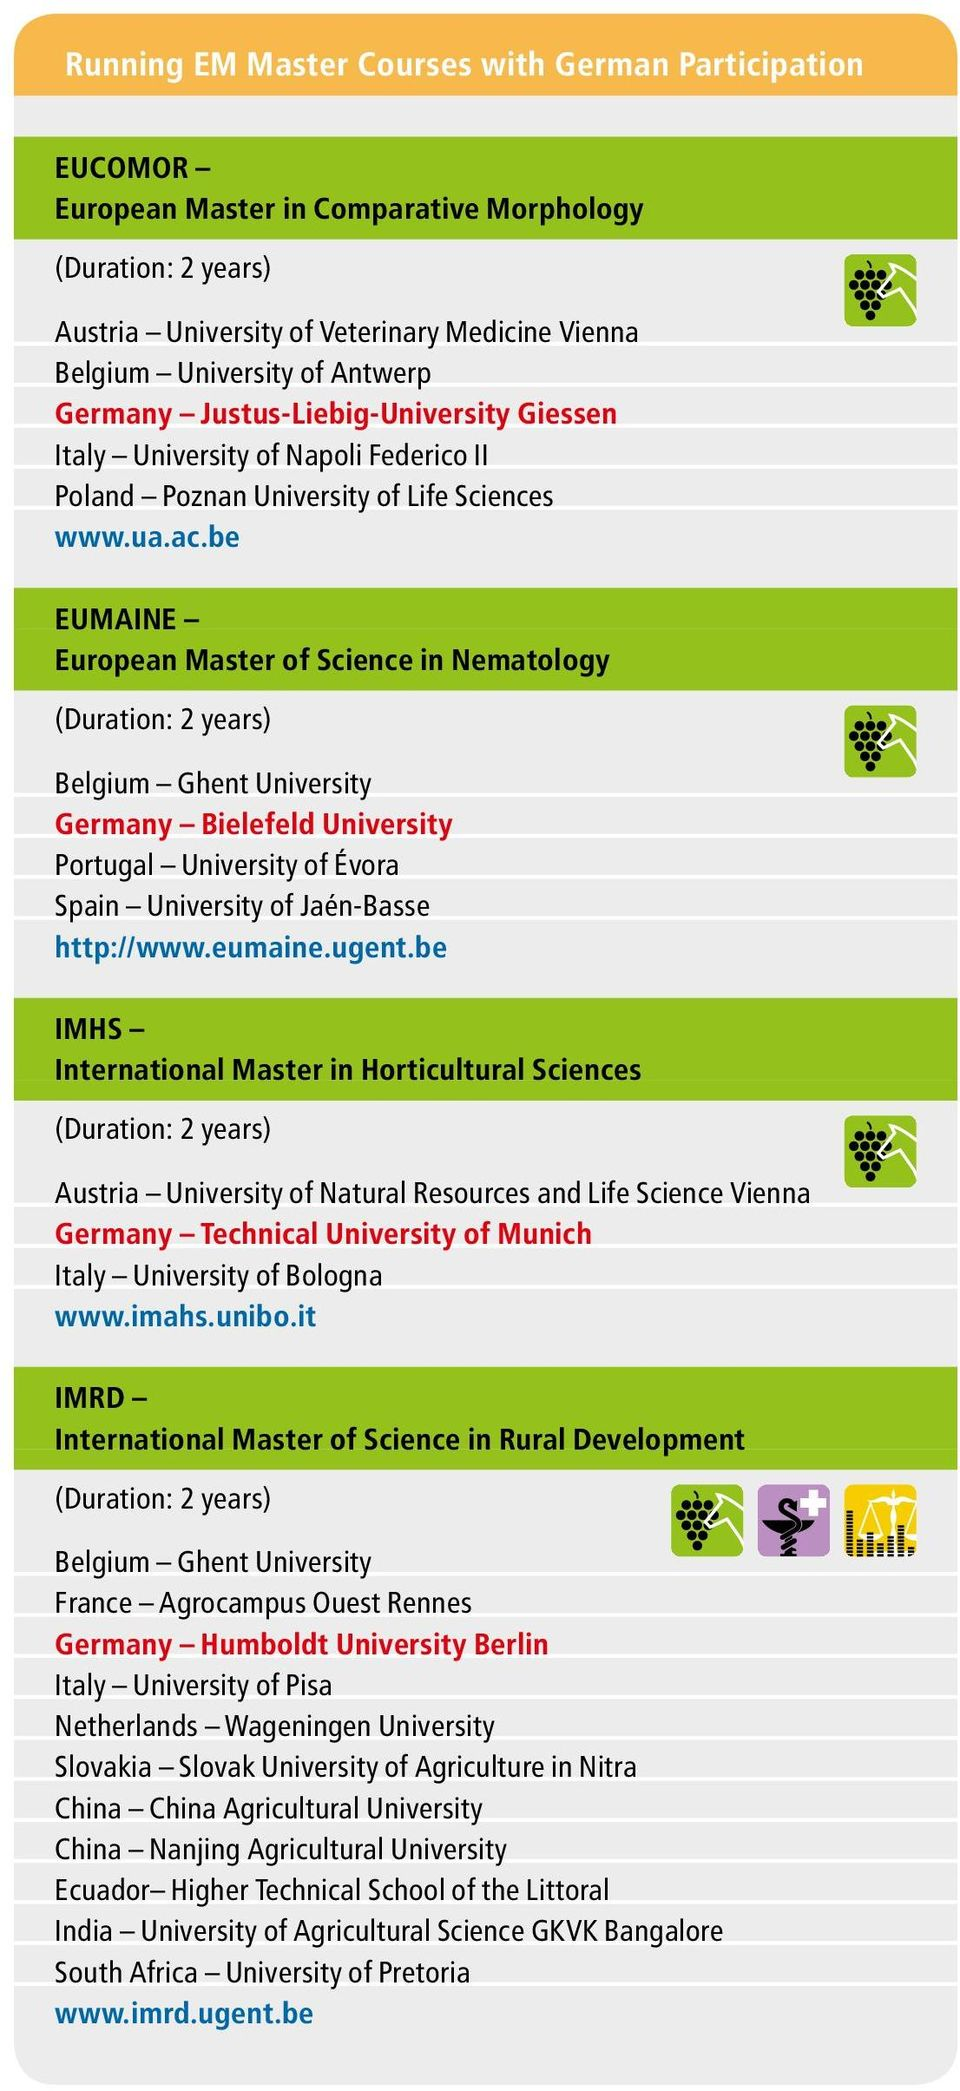 be EUMAINE European Master of Science in Nematology Belgium Ghent University Germany Bielefeld University Portugal University of Évora Spain University of Jaén-Basse http://www.eumaine.ugent.